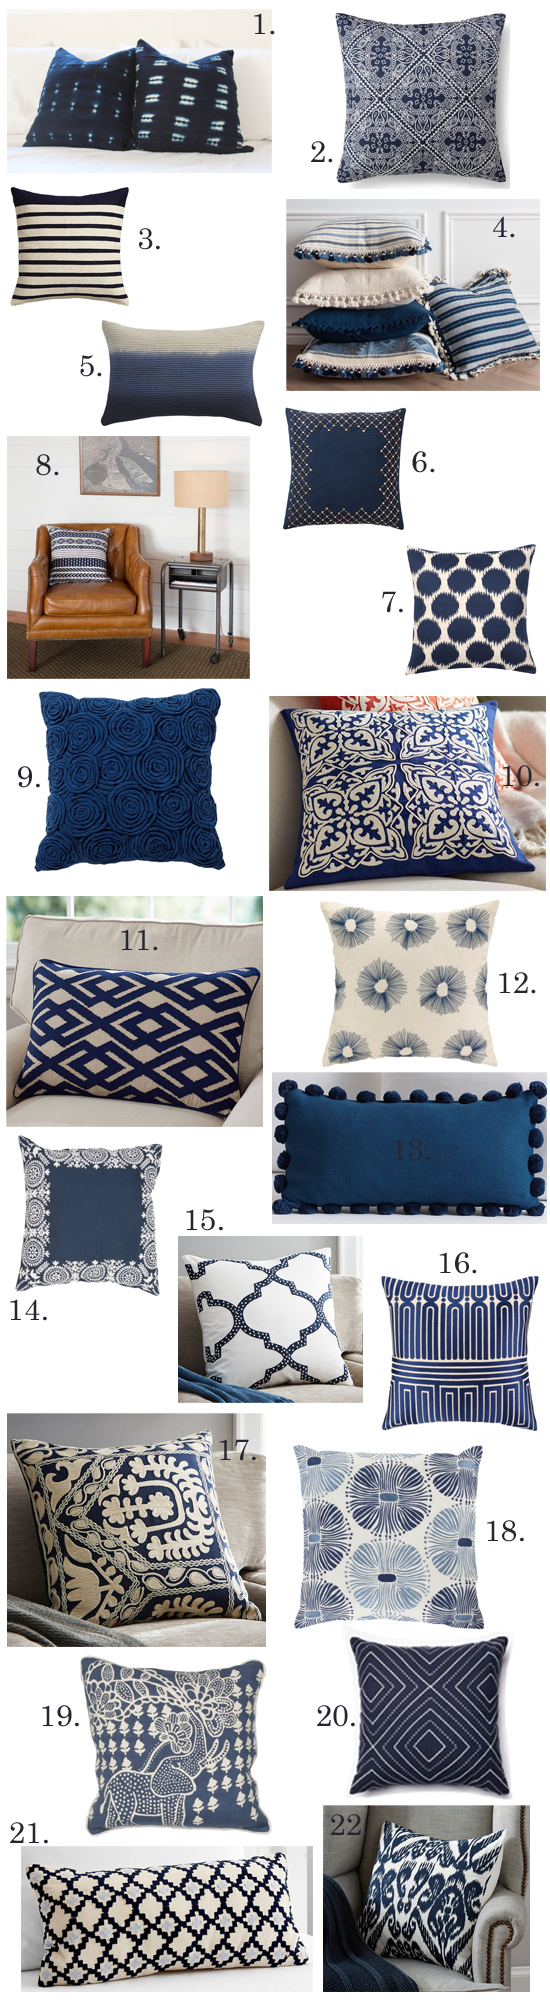 Building a dream house navy throw pillows master bedroom makeover blue throws and master bedroom Master bedroom throw pillows